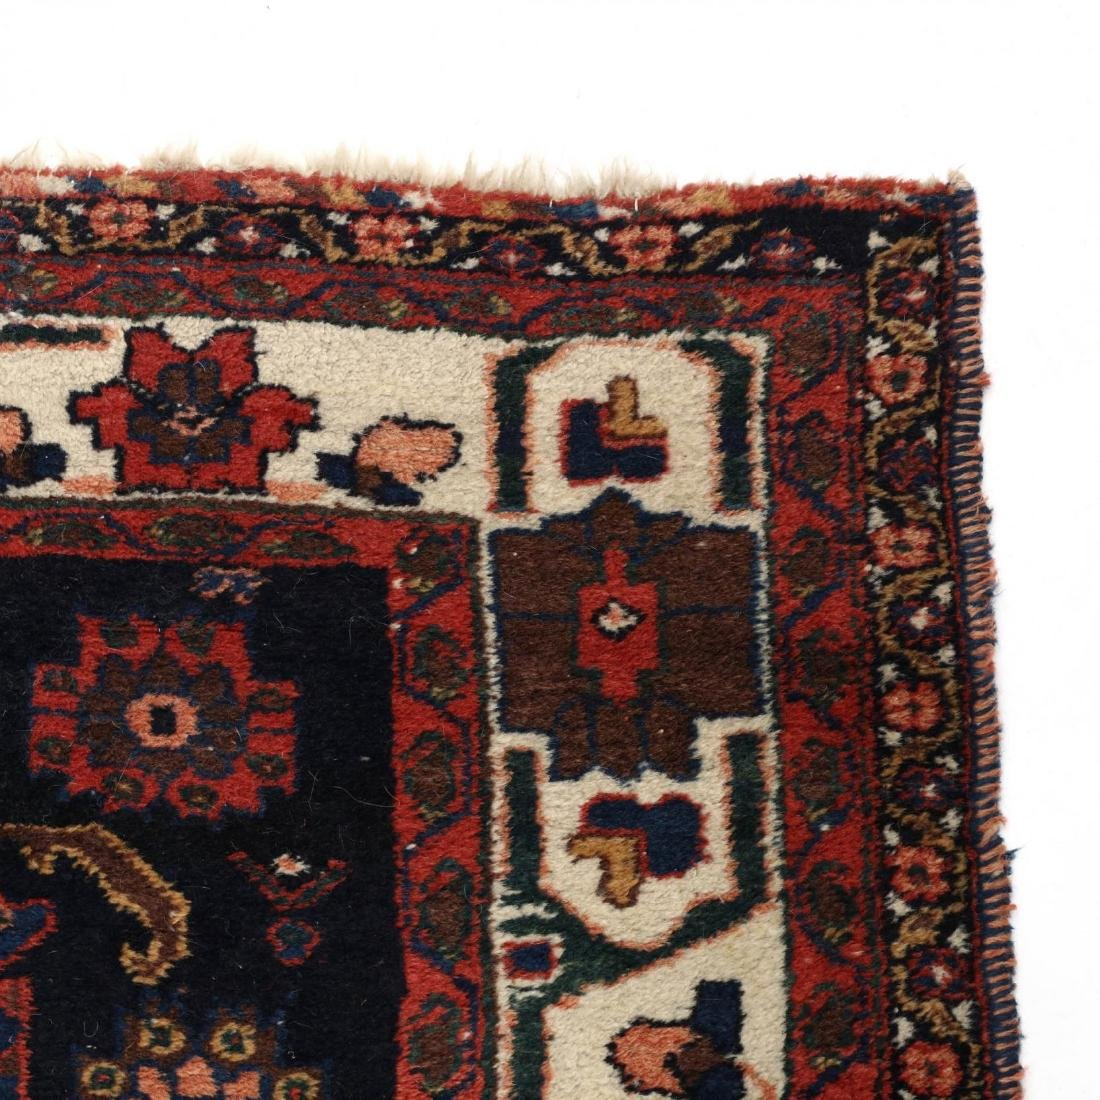 Persian Tribal Rug - 5